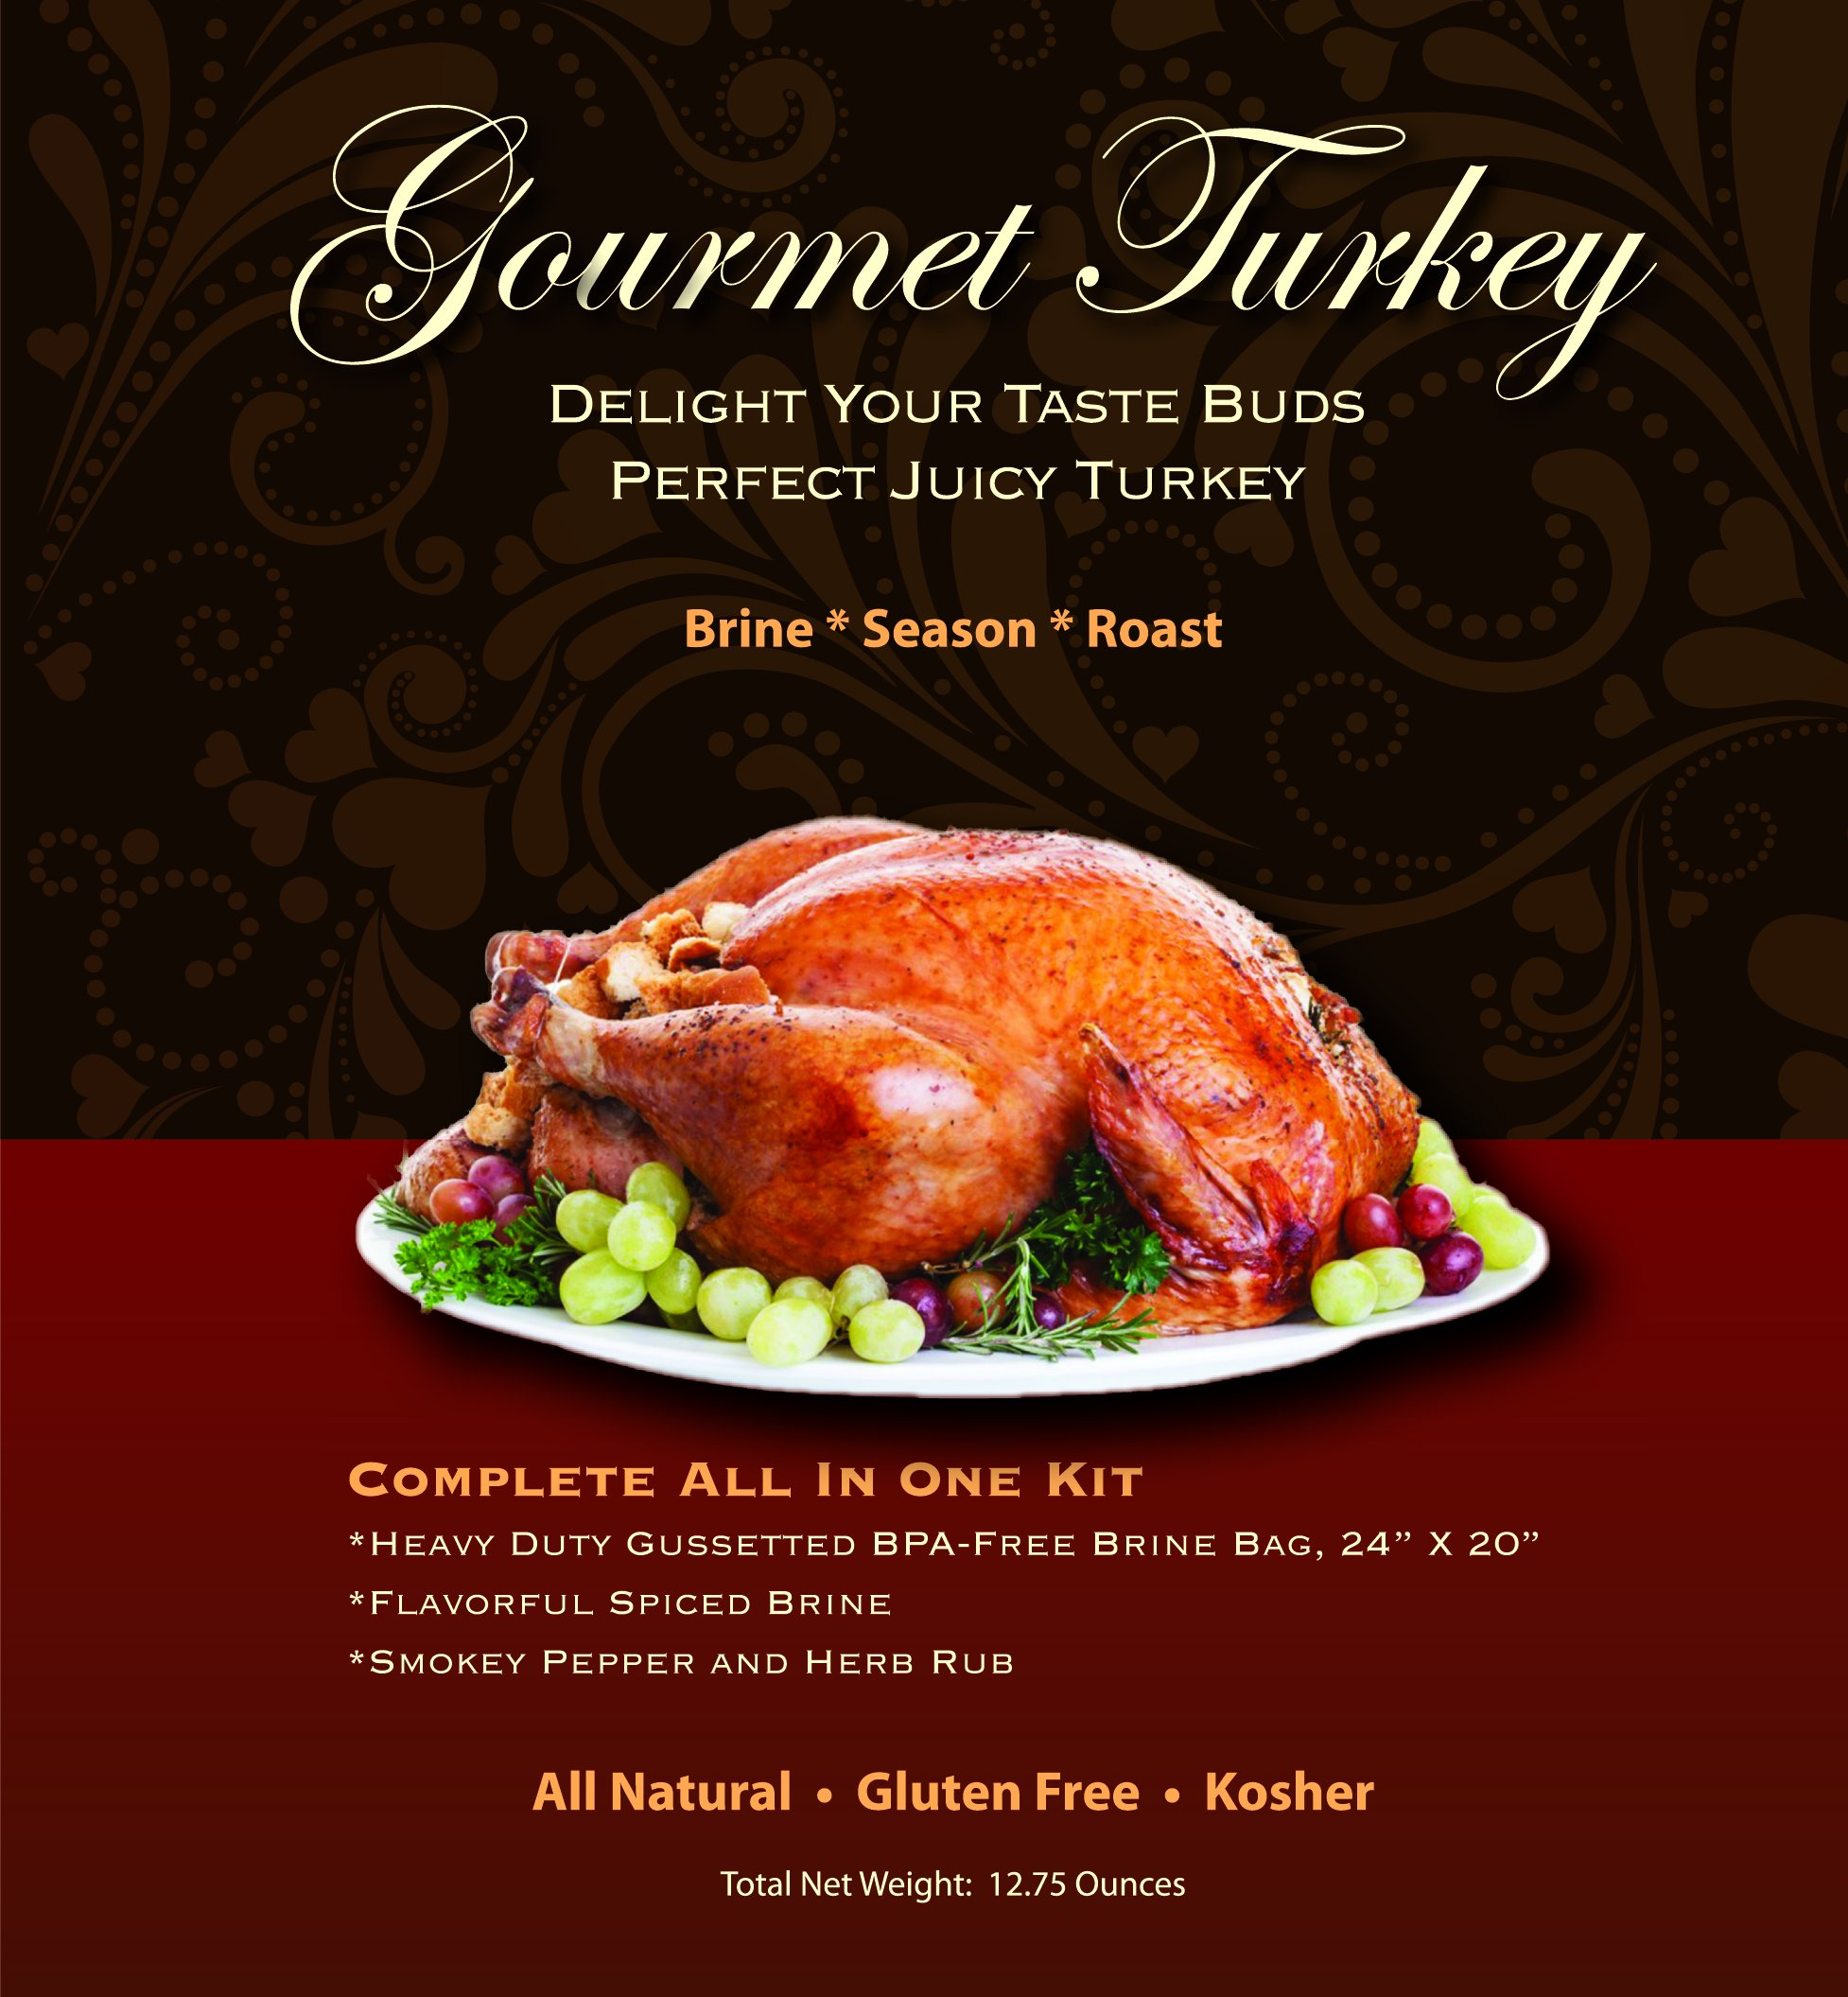 Gourmet Turkey Brine Kit, All-In-One System For Creating A Fine Dining Experience, Includes Spiced Brine, Smokey Pepper and Herb Rub and Heavy Duty BPA Free Brine Bag